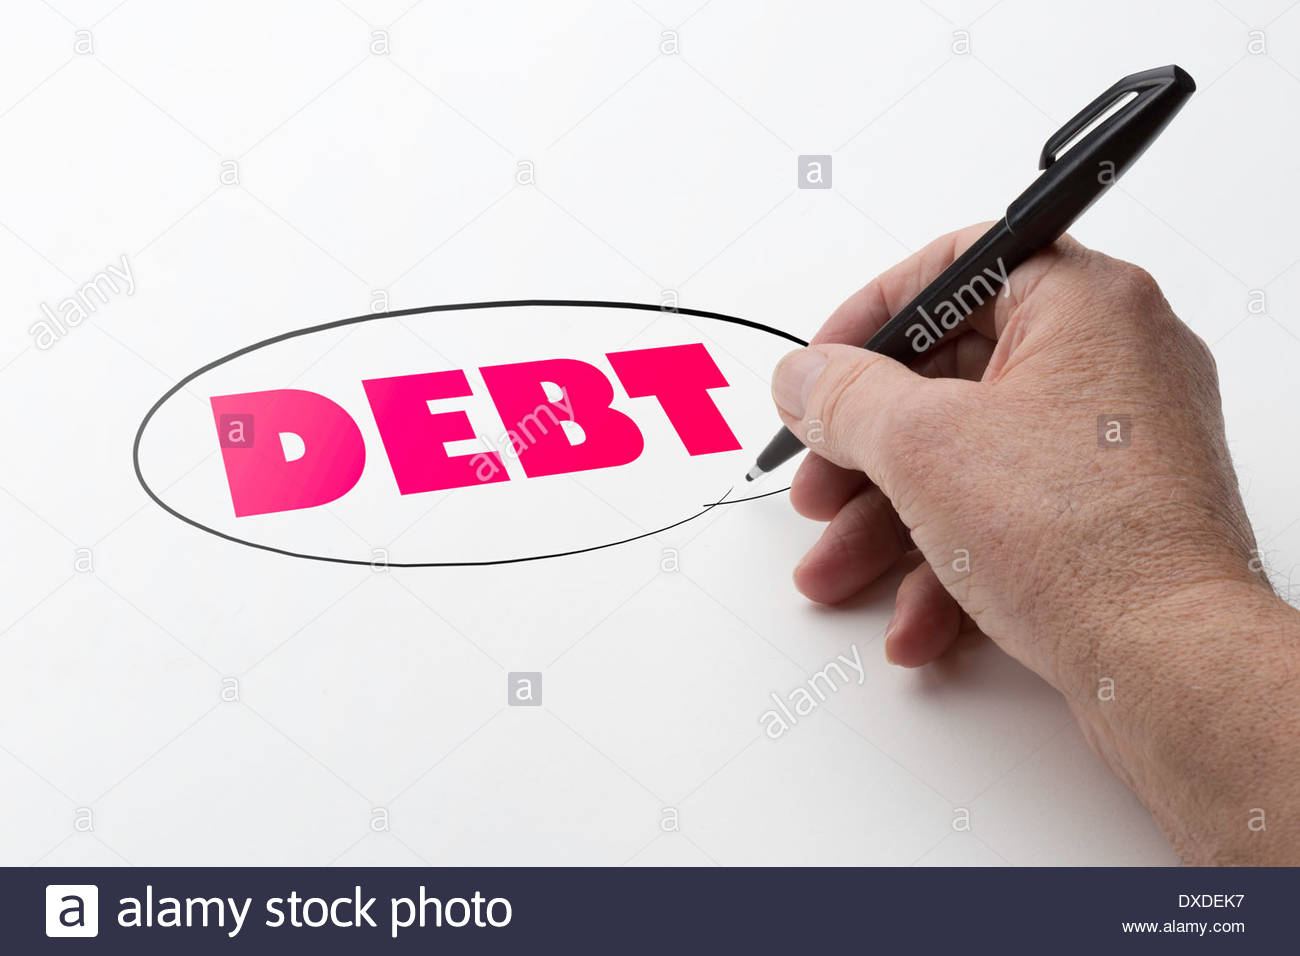 Man hand holding a black pen and encircling the word debt. - Stock Image